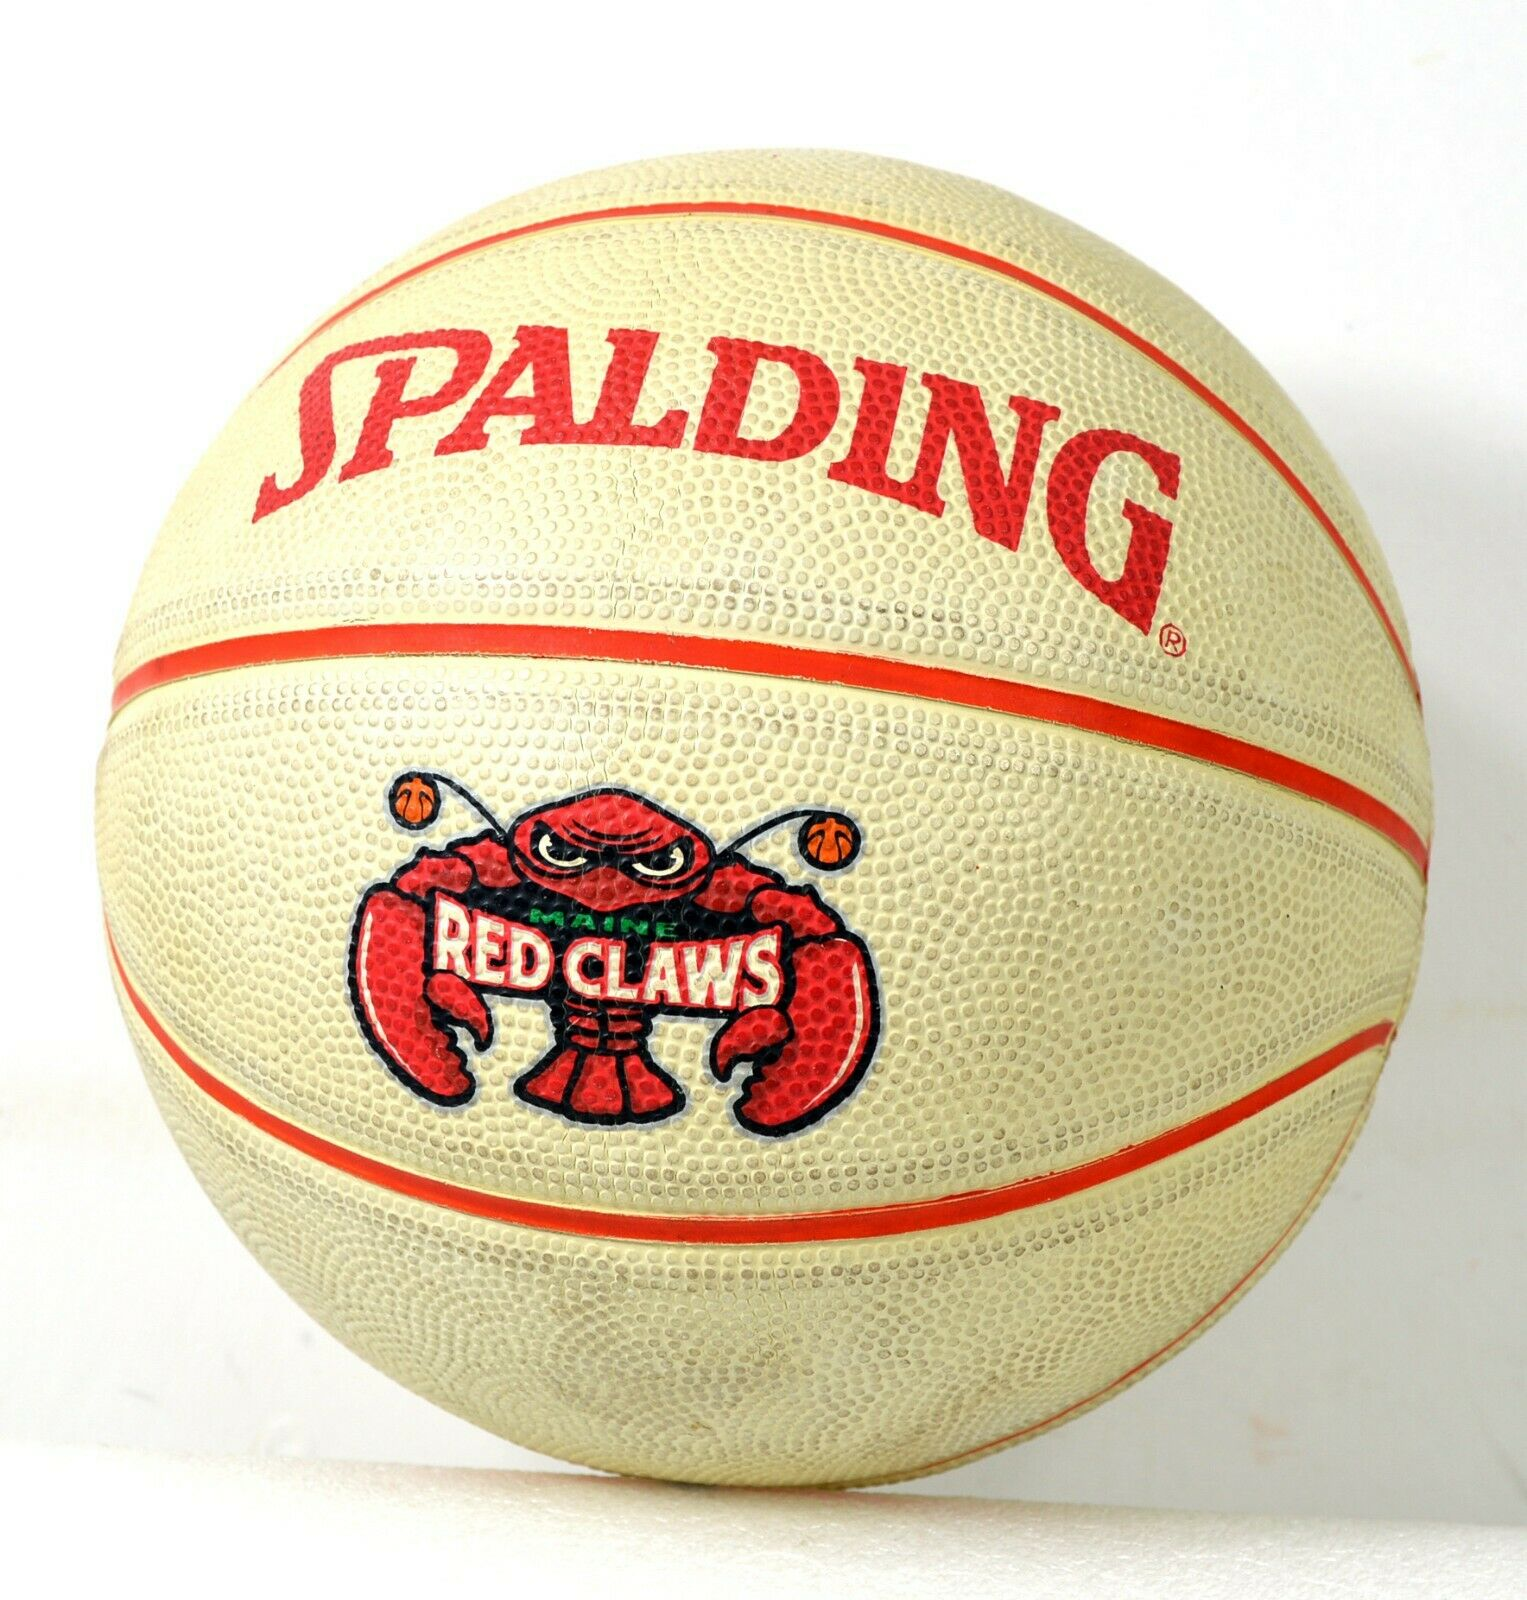 Maine Red Claws Basketball - Spalding - NBA Developmental League